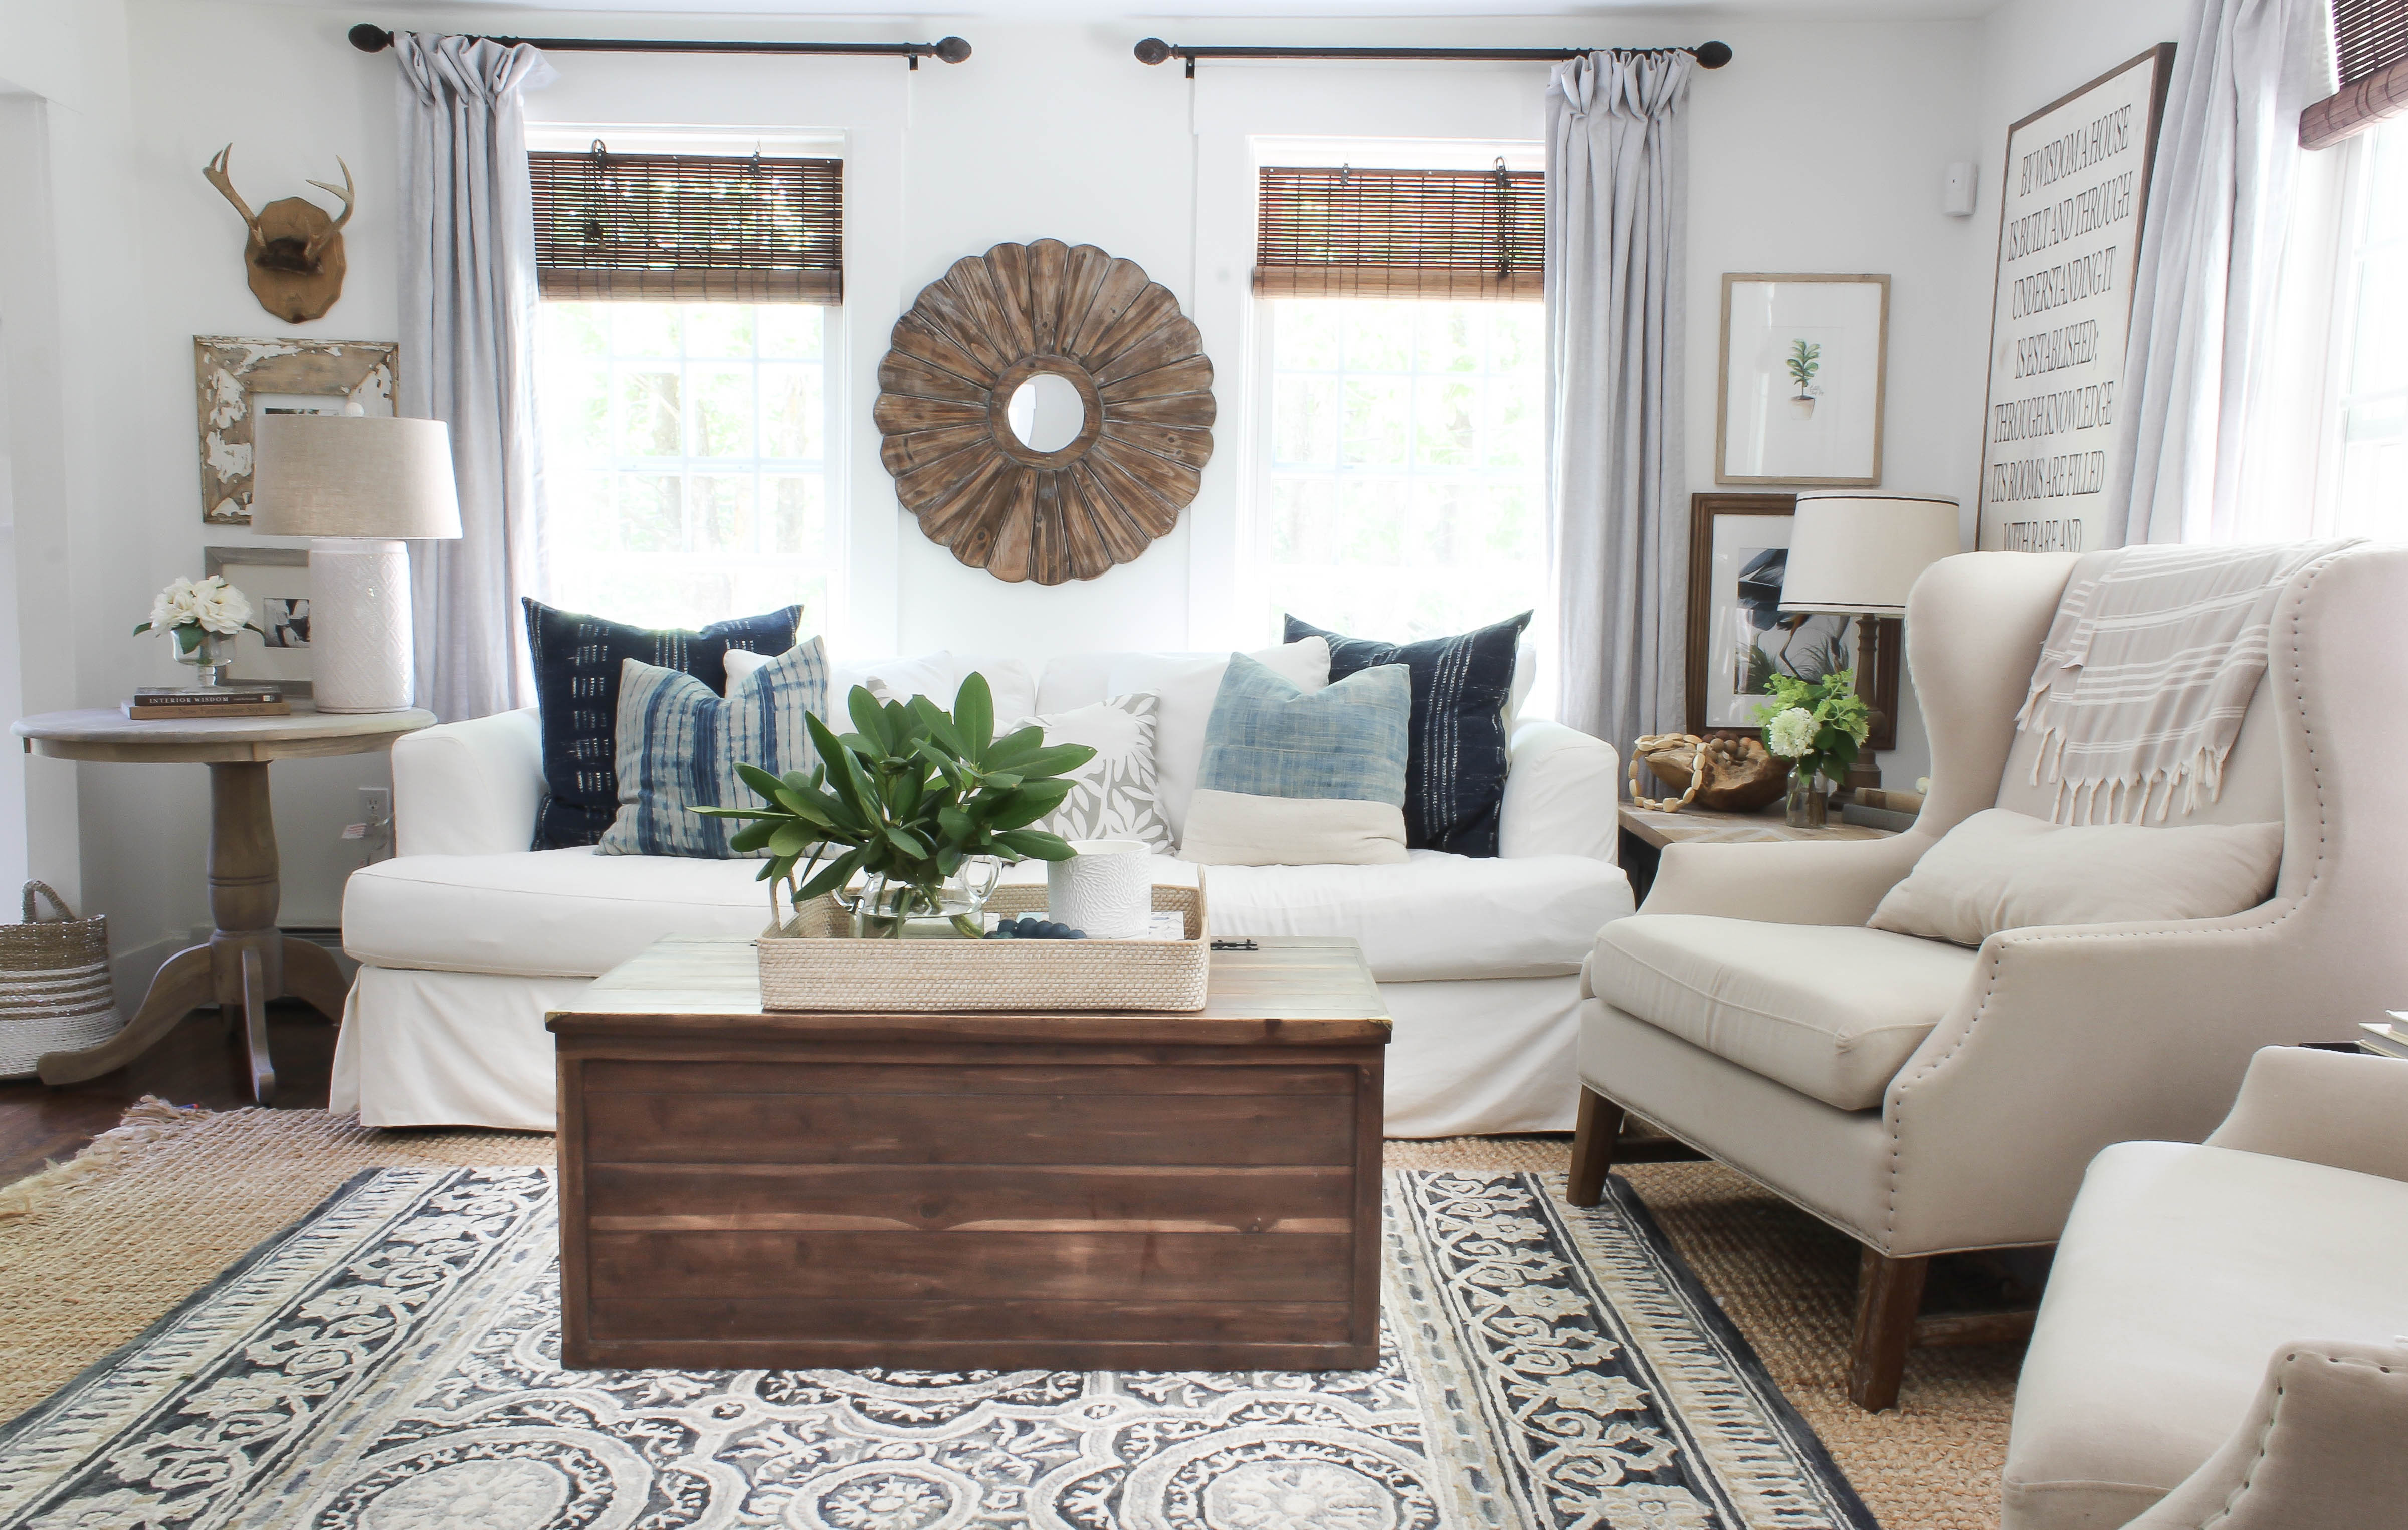 Living Room Sources for 2017 - Rooms For Rent blog